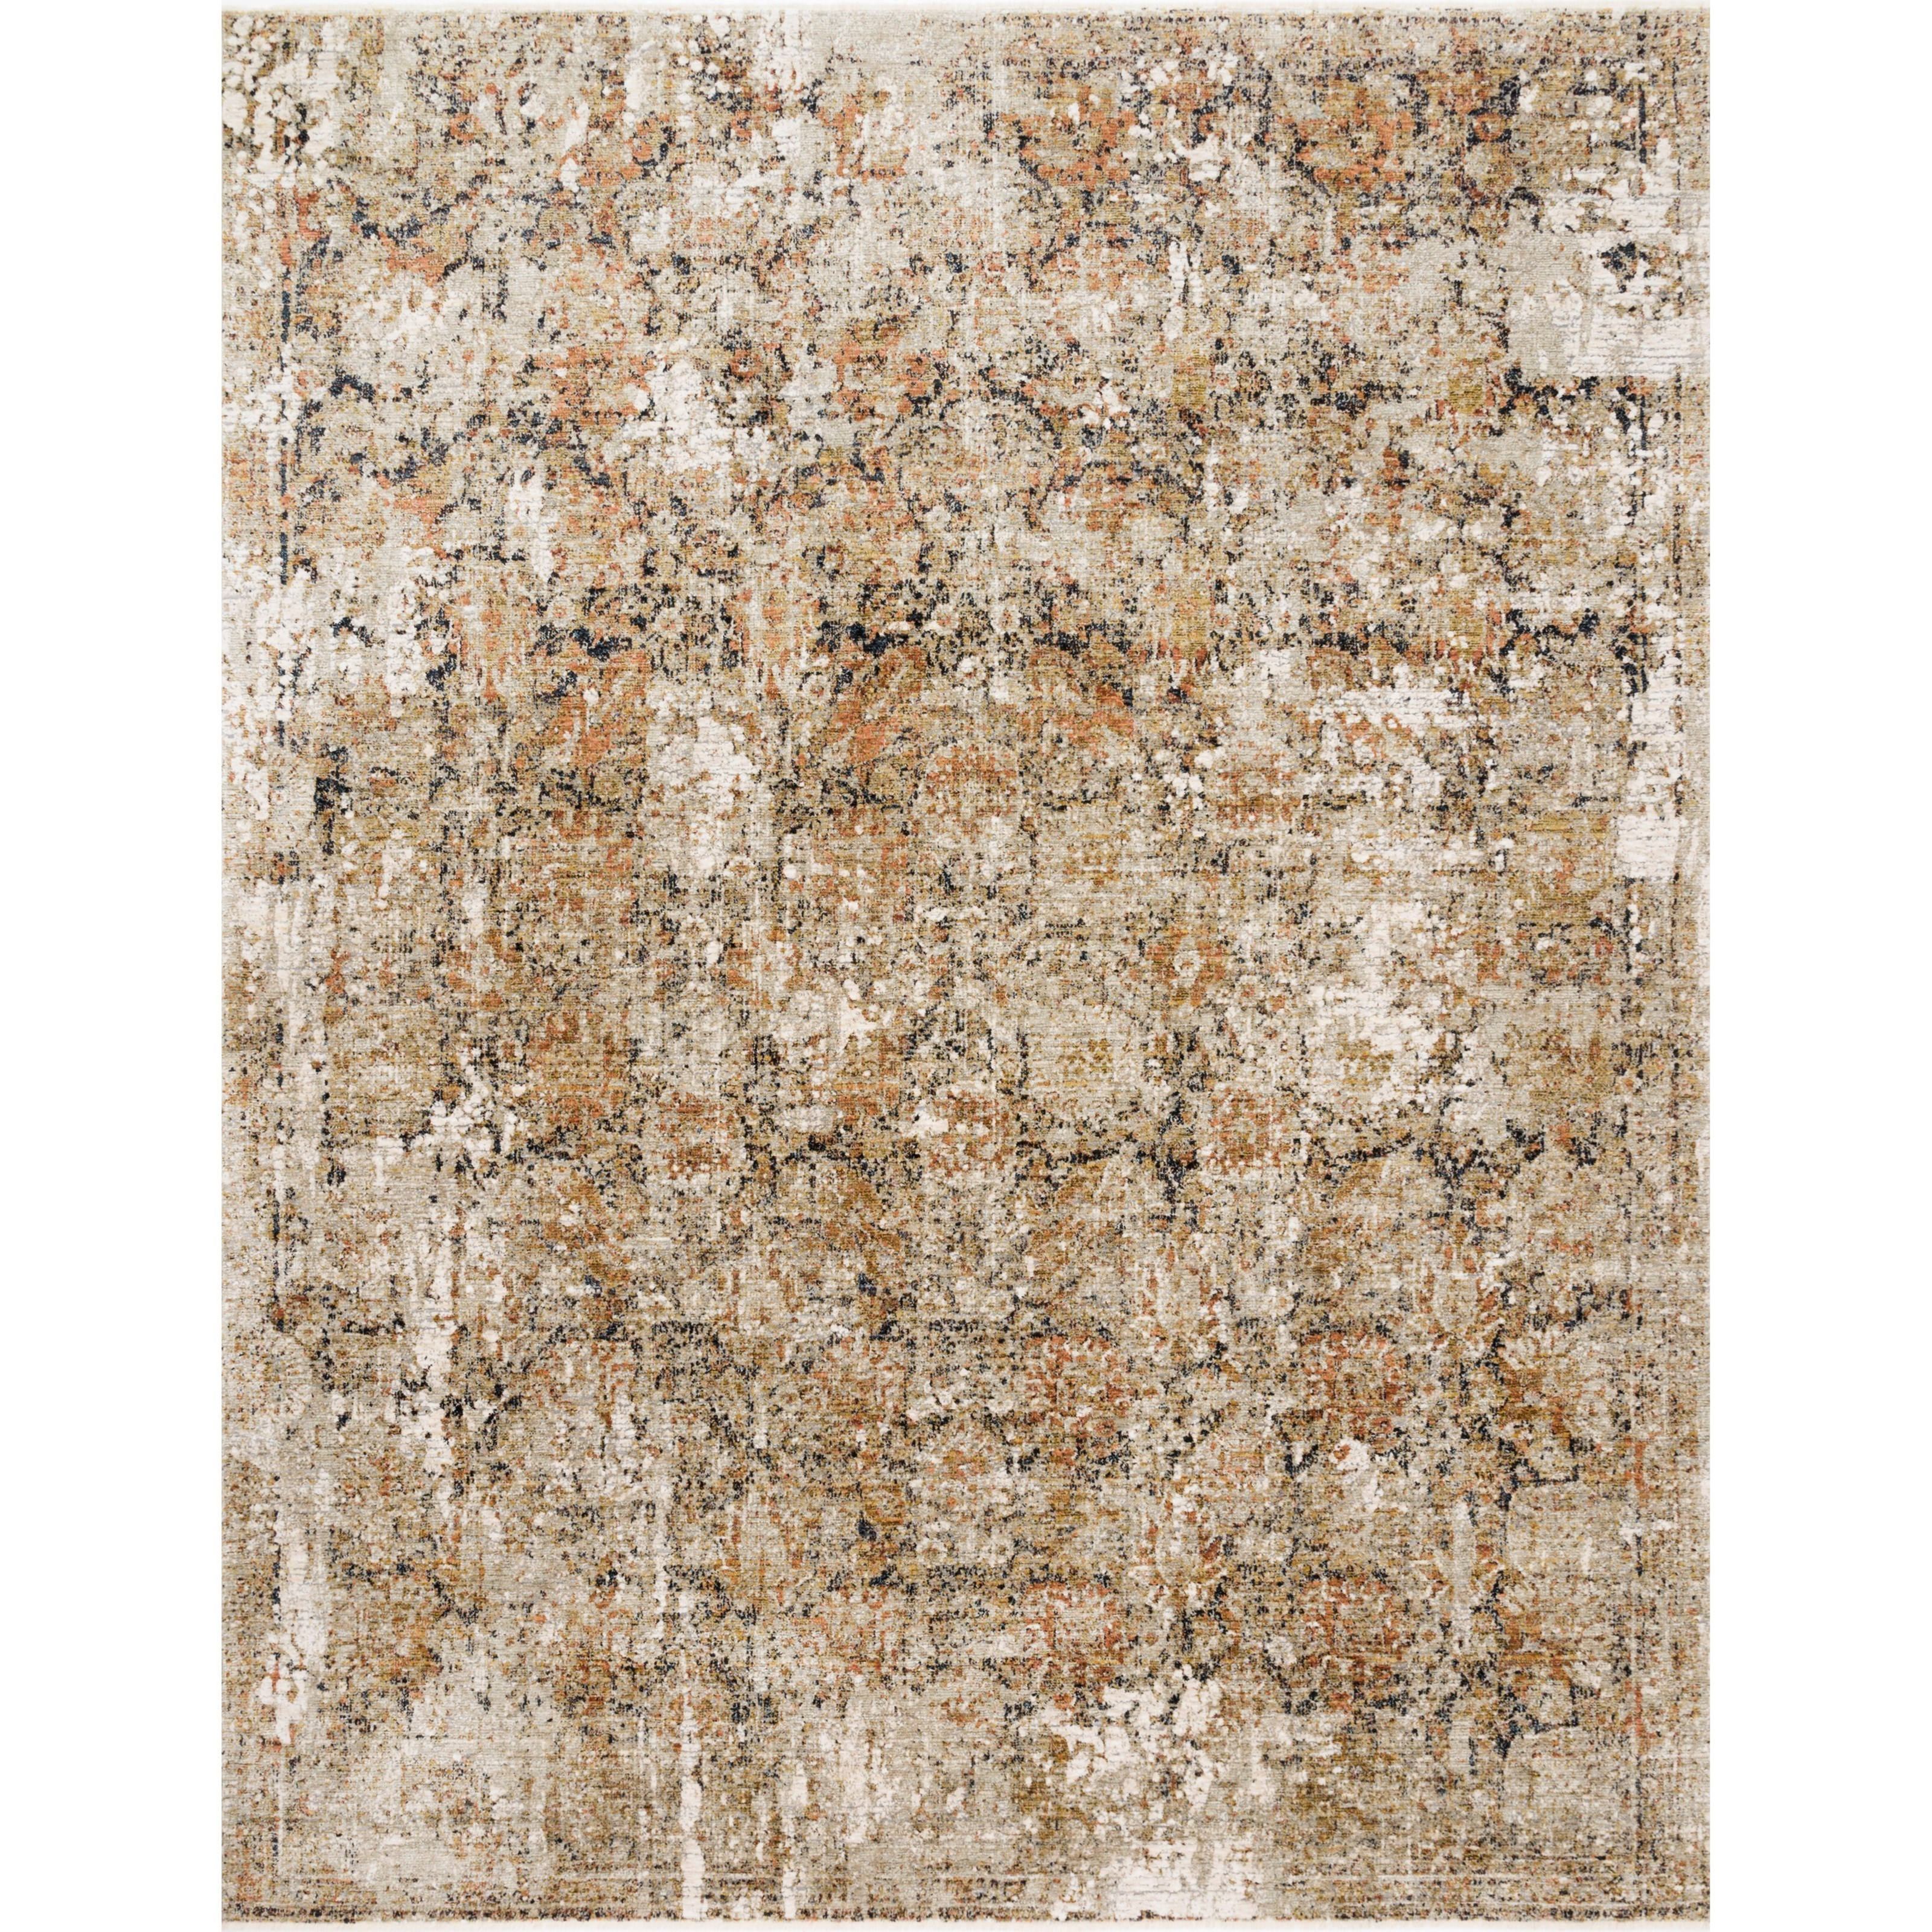 """Theia 6'7"""" x 9'6"""" Taupe / Gold Rug by Loloi Rugs at Virginia Furniture Market"""